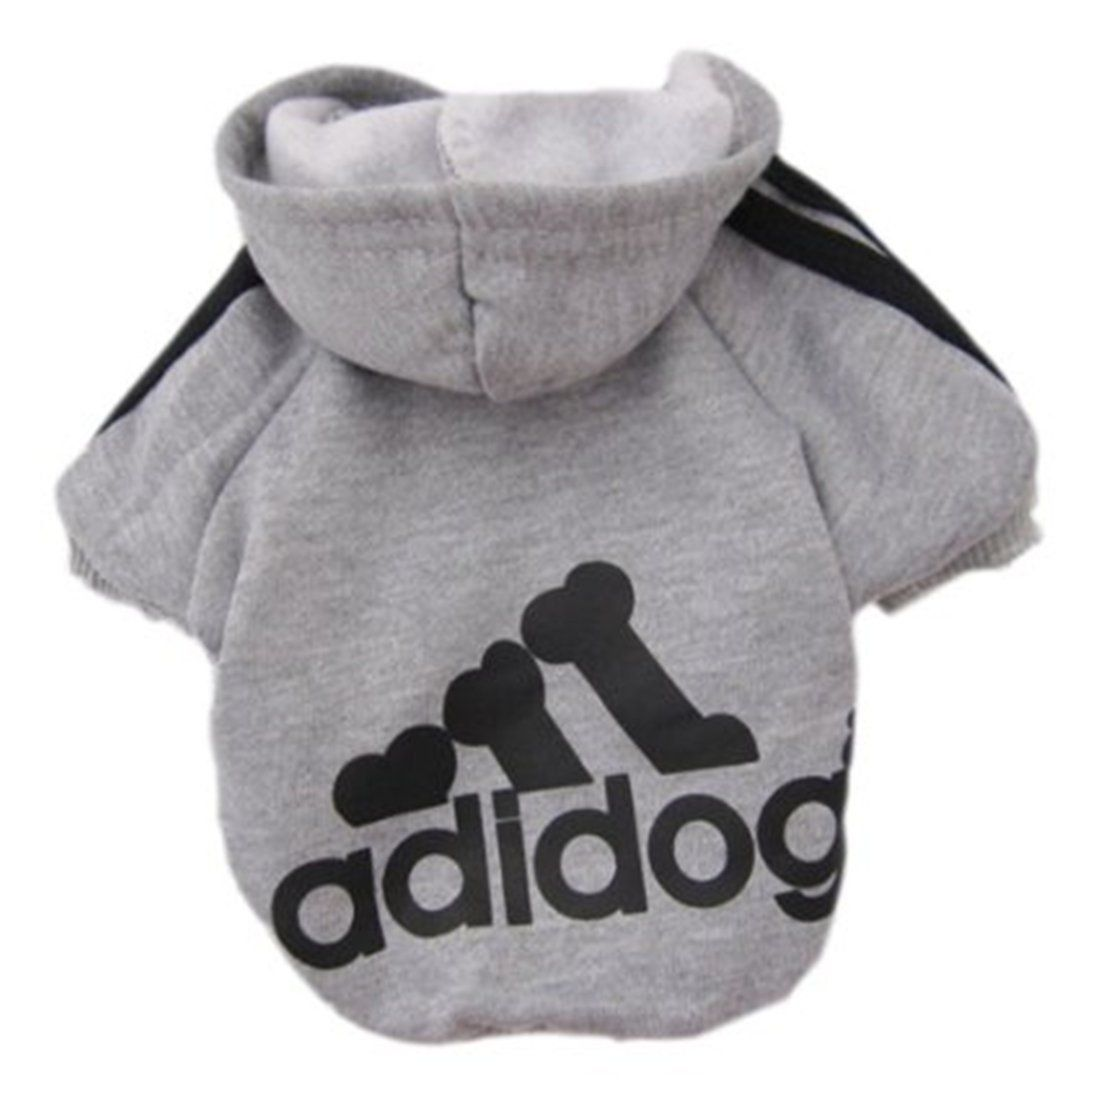 High Quality Pet Dog Clothes Coat Soft Cotton Adidog Clothing 7 Colors Small Size S M L Xl Xxl Dog Jacket You C Sweater Puppy Puppy Clothes Puppy Sweatshirts [ 1100 x 1100 Pixel ]